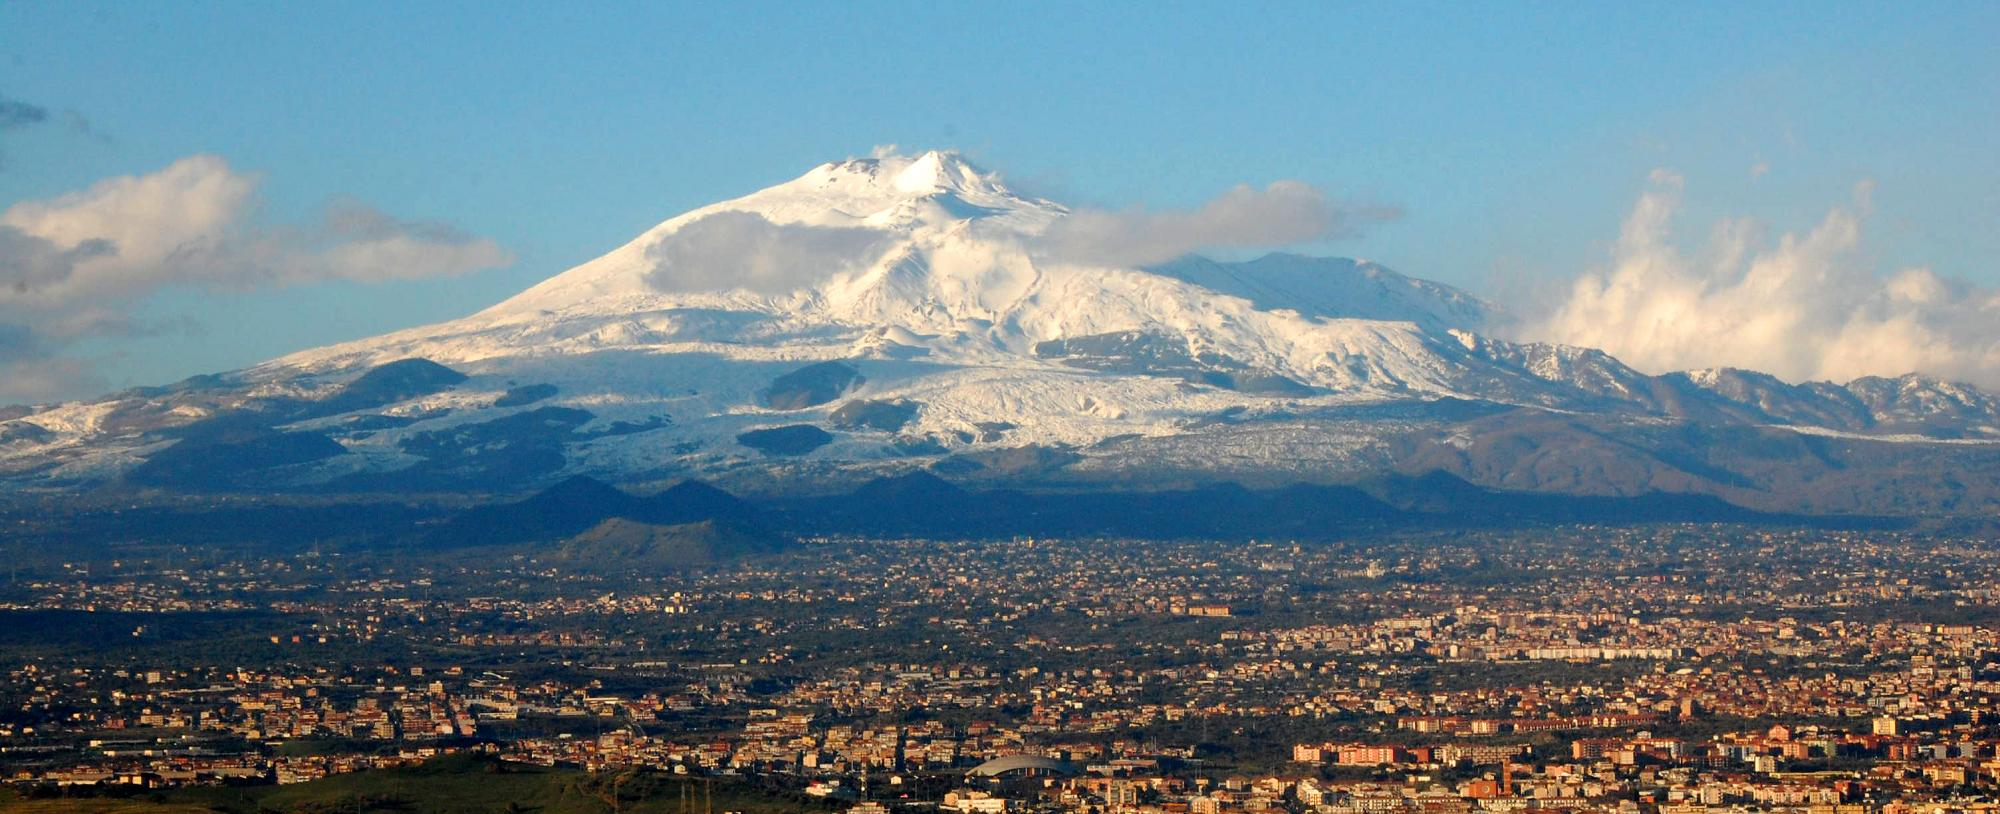 BenAveling - Opera propria, CC BY-SA 4.0, https://en.wikipedia.org/wiki/Mount_Etna#/media/File:Mt_Etna_and_Catania1.jpg